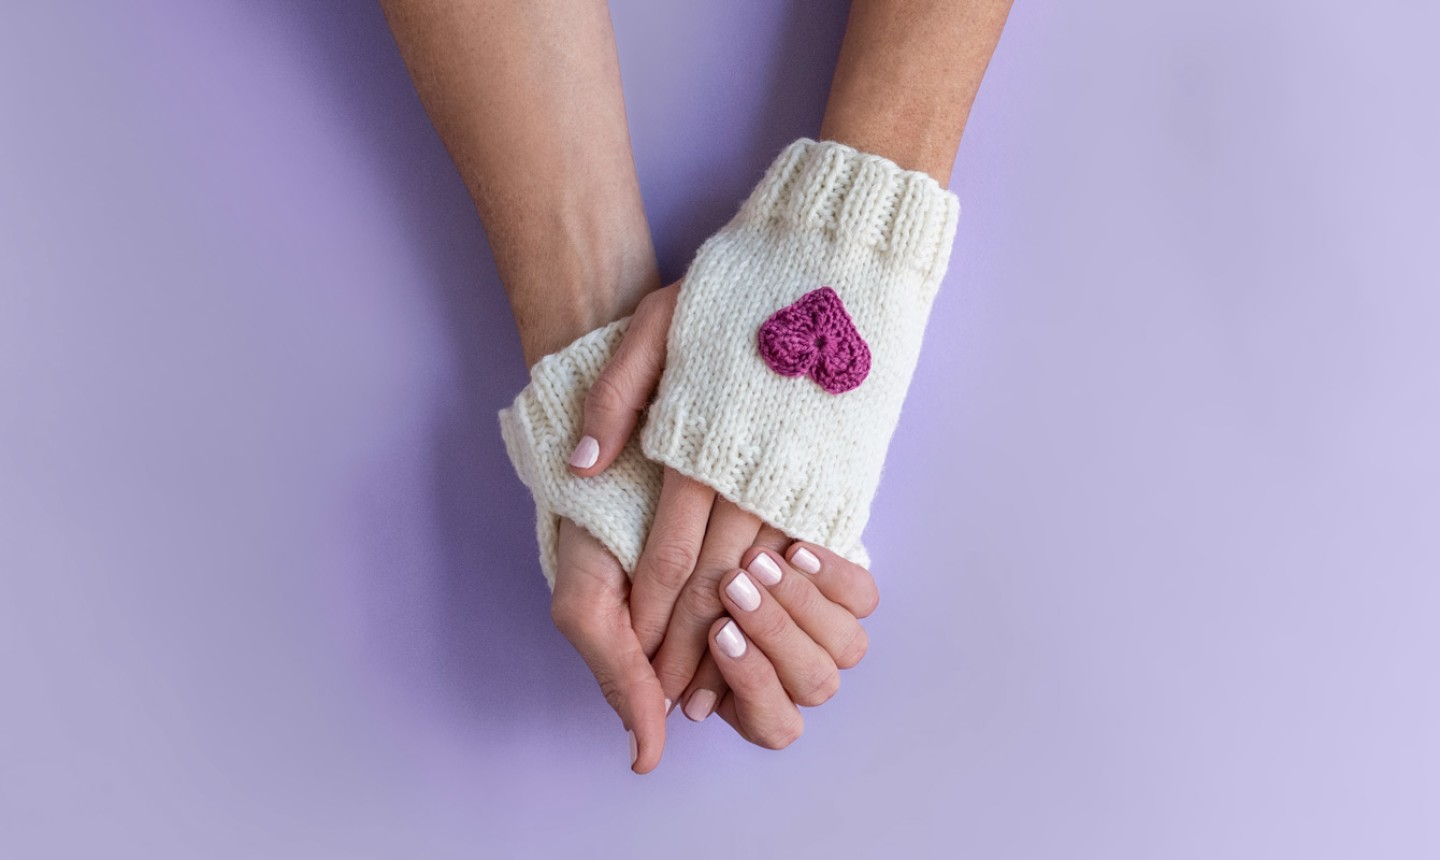 fingerless knit gloves with embroidered heart